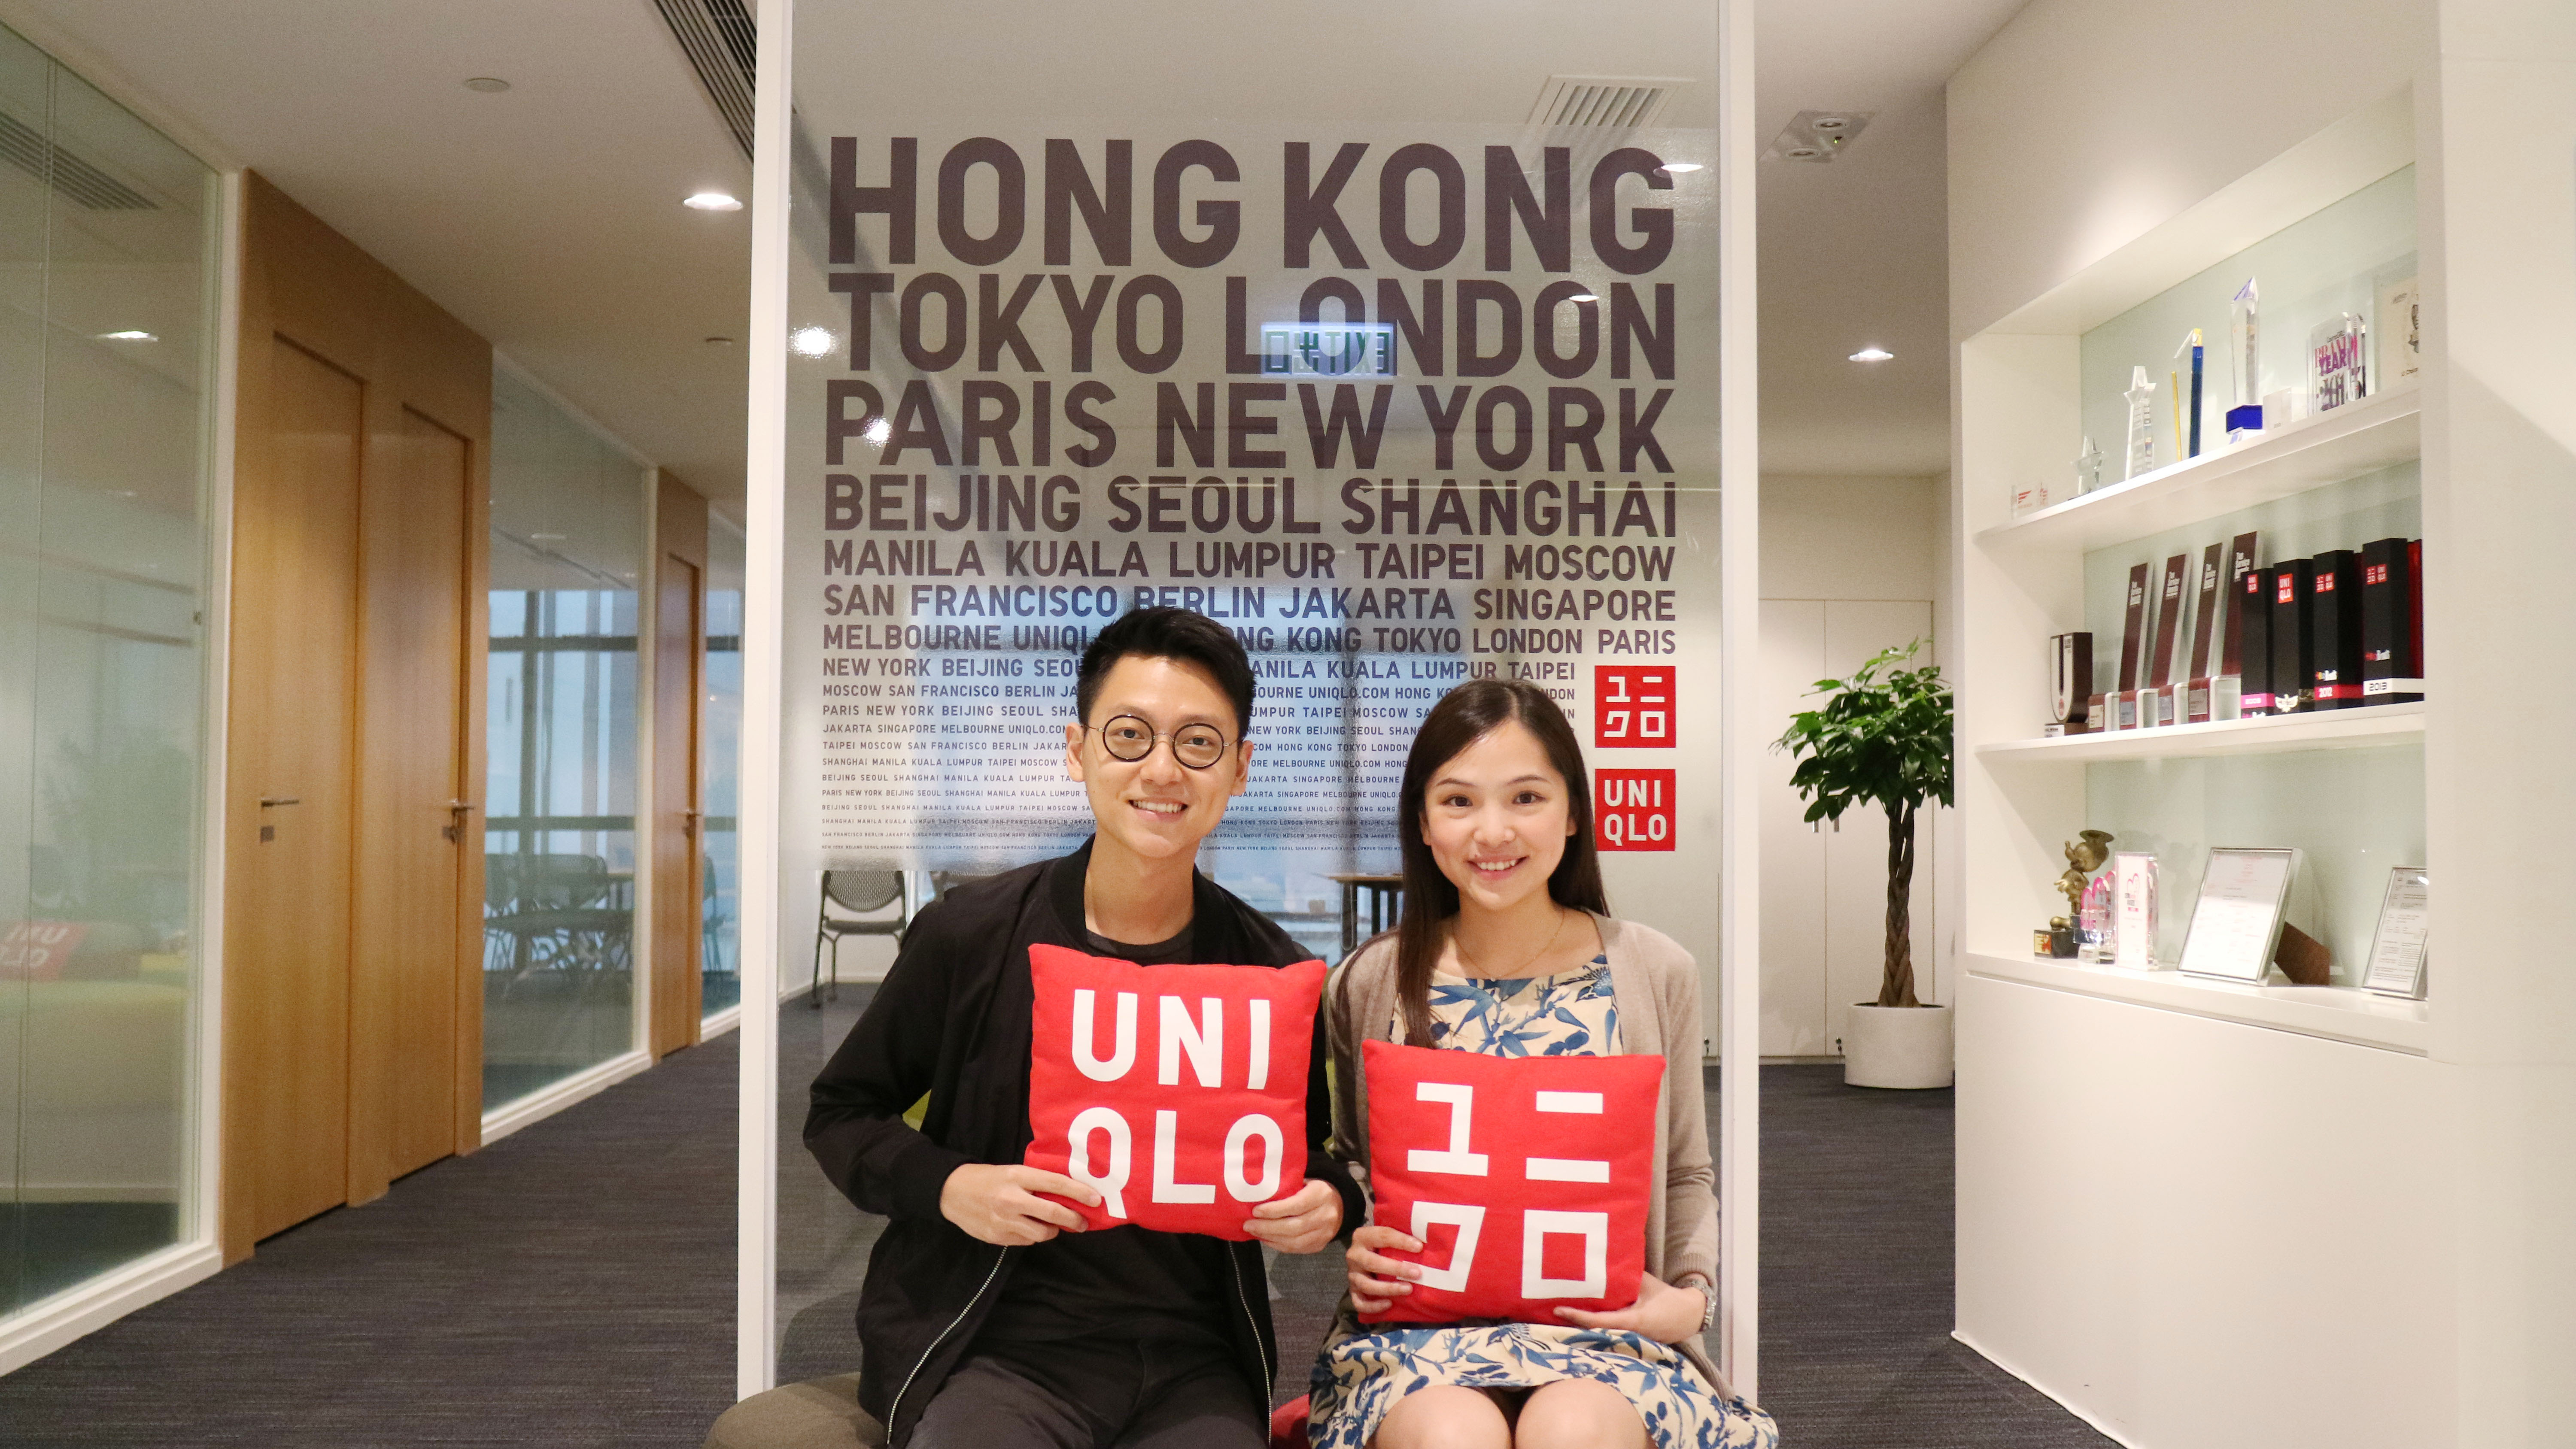 uniqlo in hong kong business essay And as of 2010, the company are also operating in hong kong, china, united kingdom, south korea, france, singapore and united states uniqlo formed the idea of blending of 'unique' and 'clothing' as an symbol of originality and uniqueness of the apparel industry in japan.